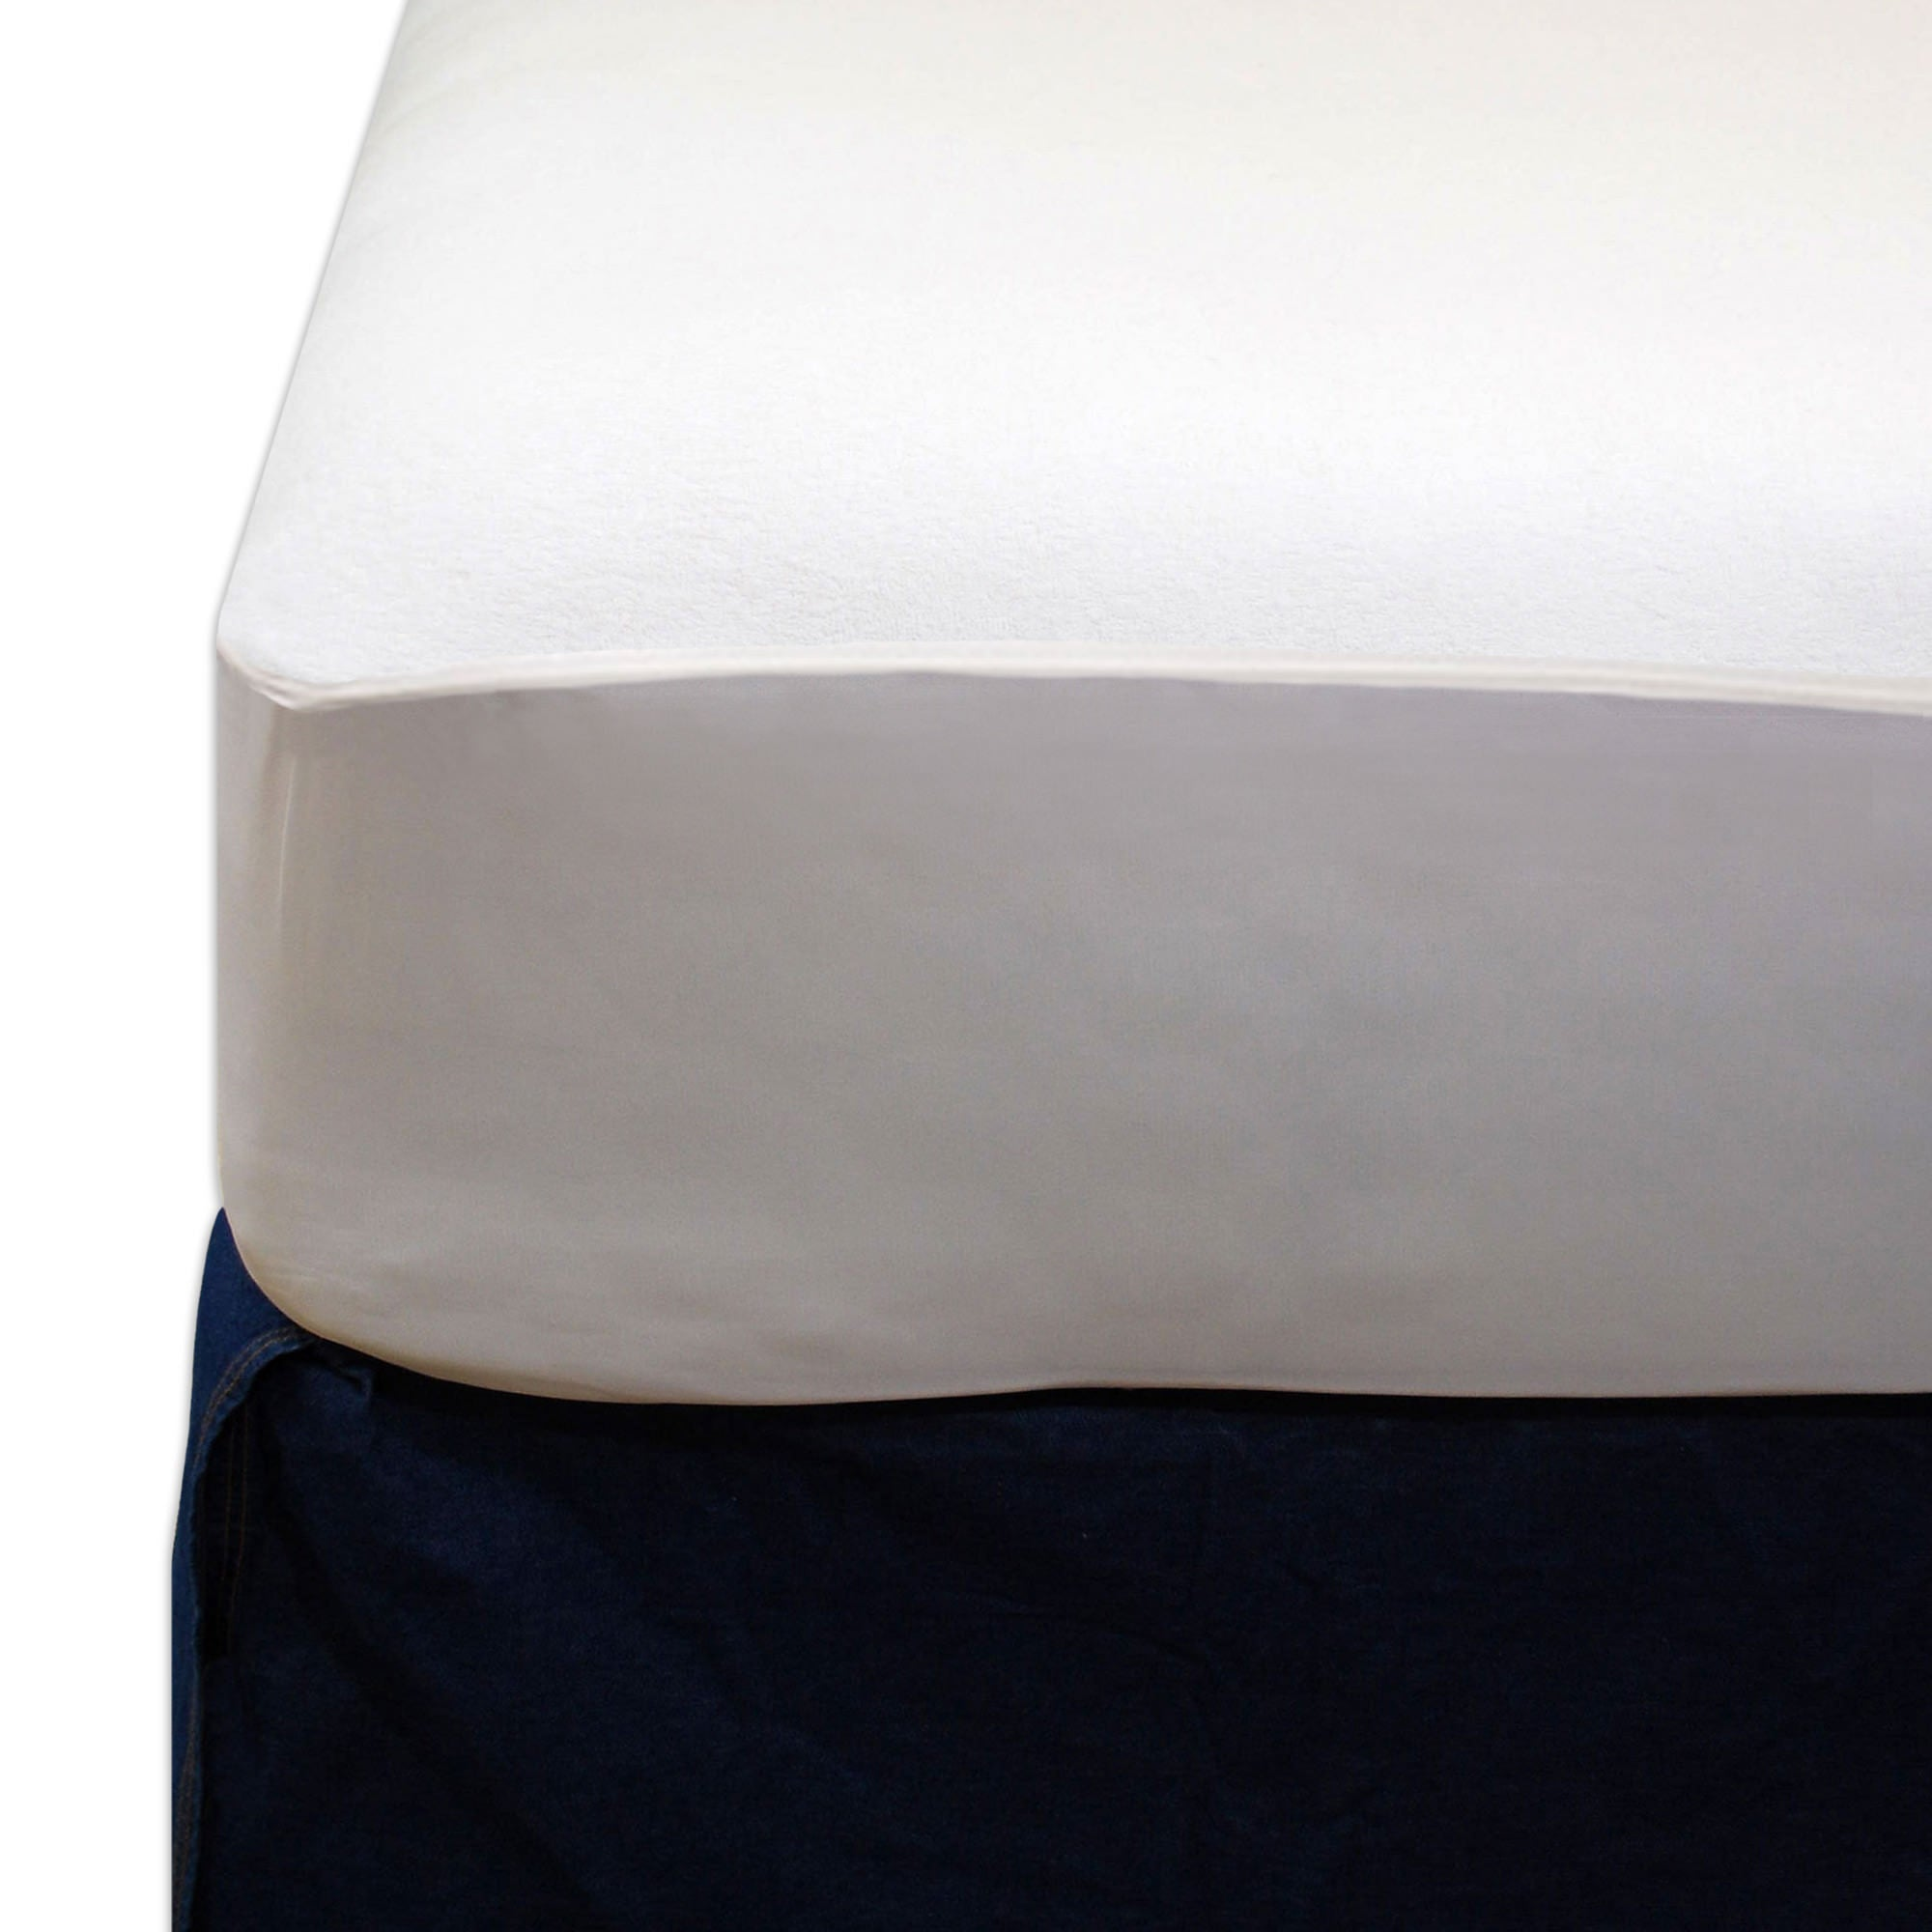 Bedding-Breathable, Waterproof Mattress Protector (Zippered, 9-15 inch depth)